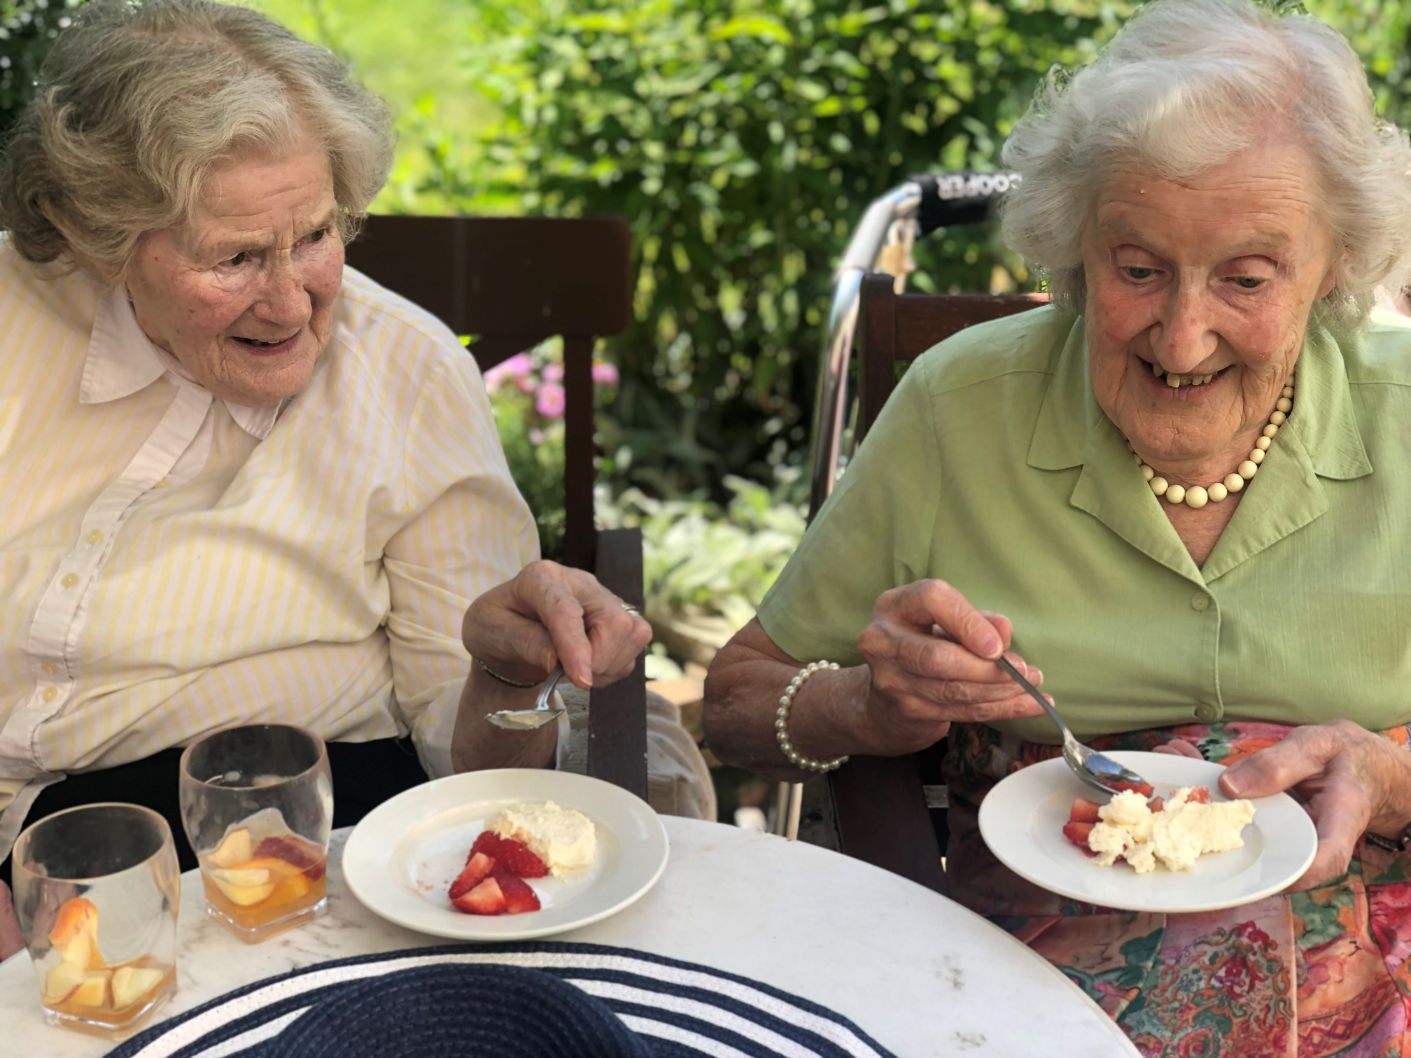 Hungerford Care Home, Berkshire-Residents Doris and Audrey enjoying their strawberries and cream